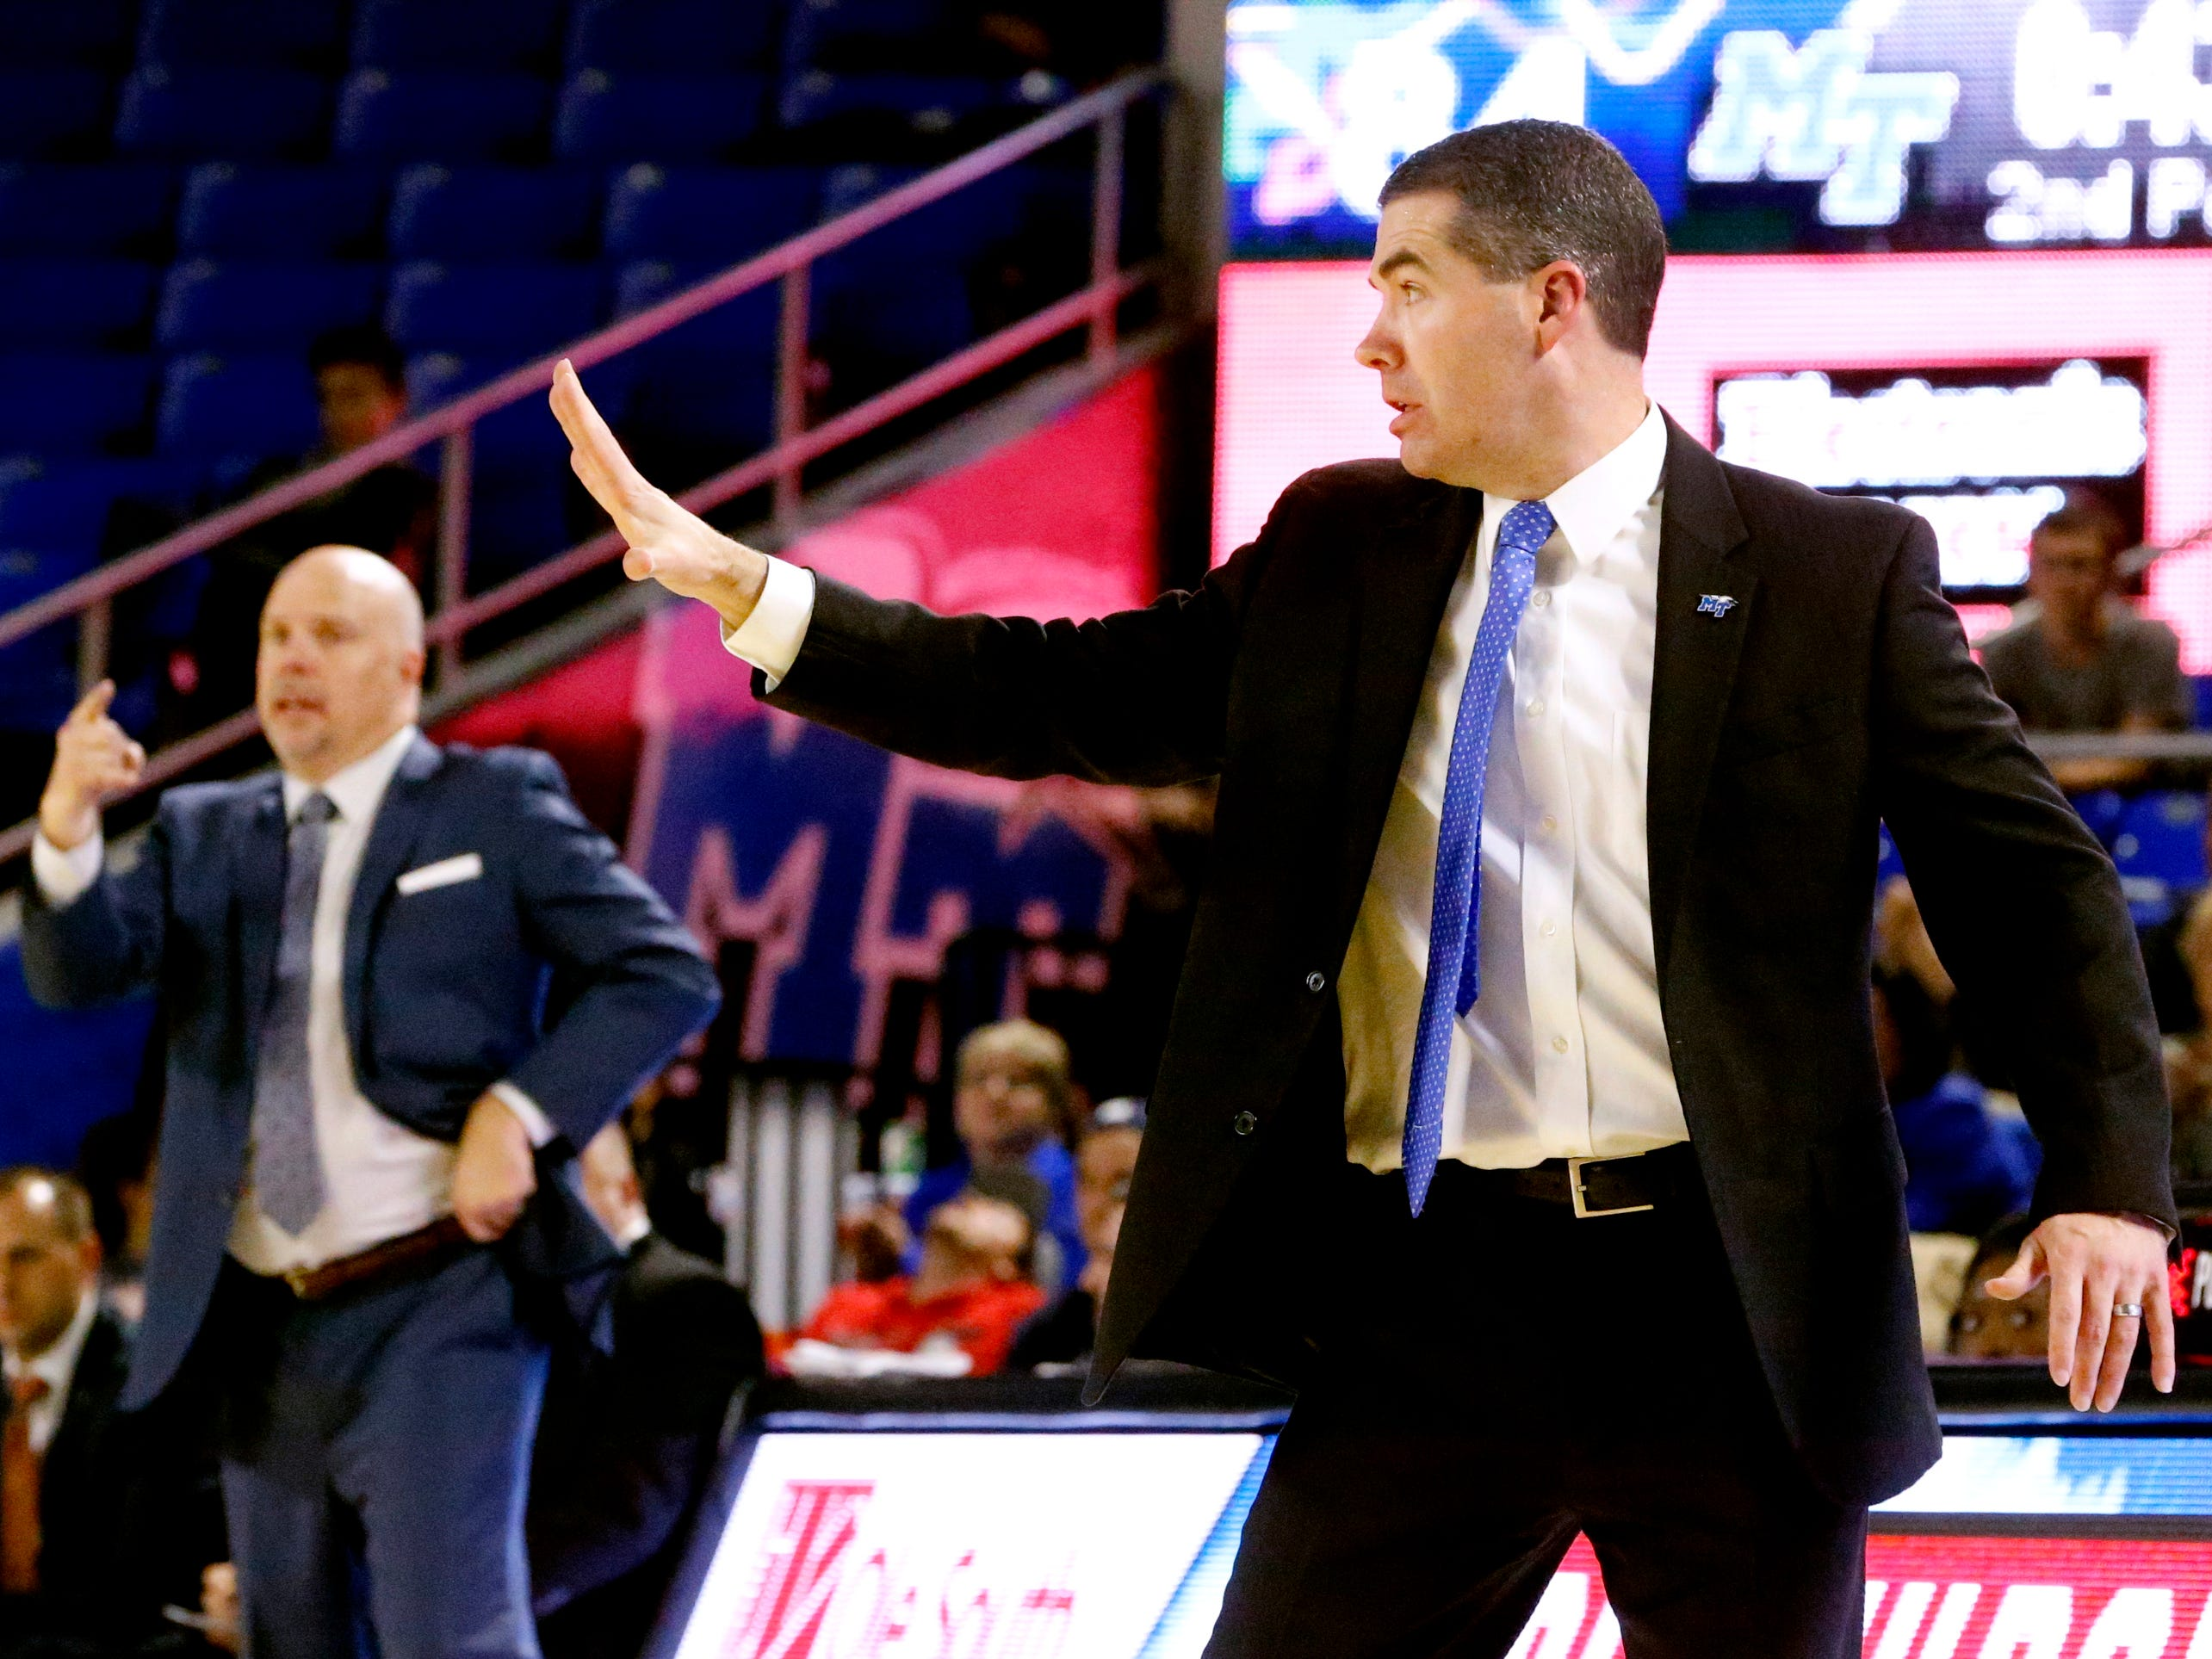 MTSU's head coach Nick McDevitt on the sidelines with UTSA's head coach Steve Henson in the background during the second half of the game on Thursday Jan. 17, 2019.